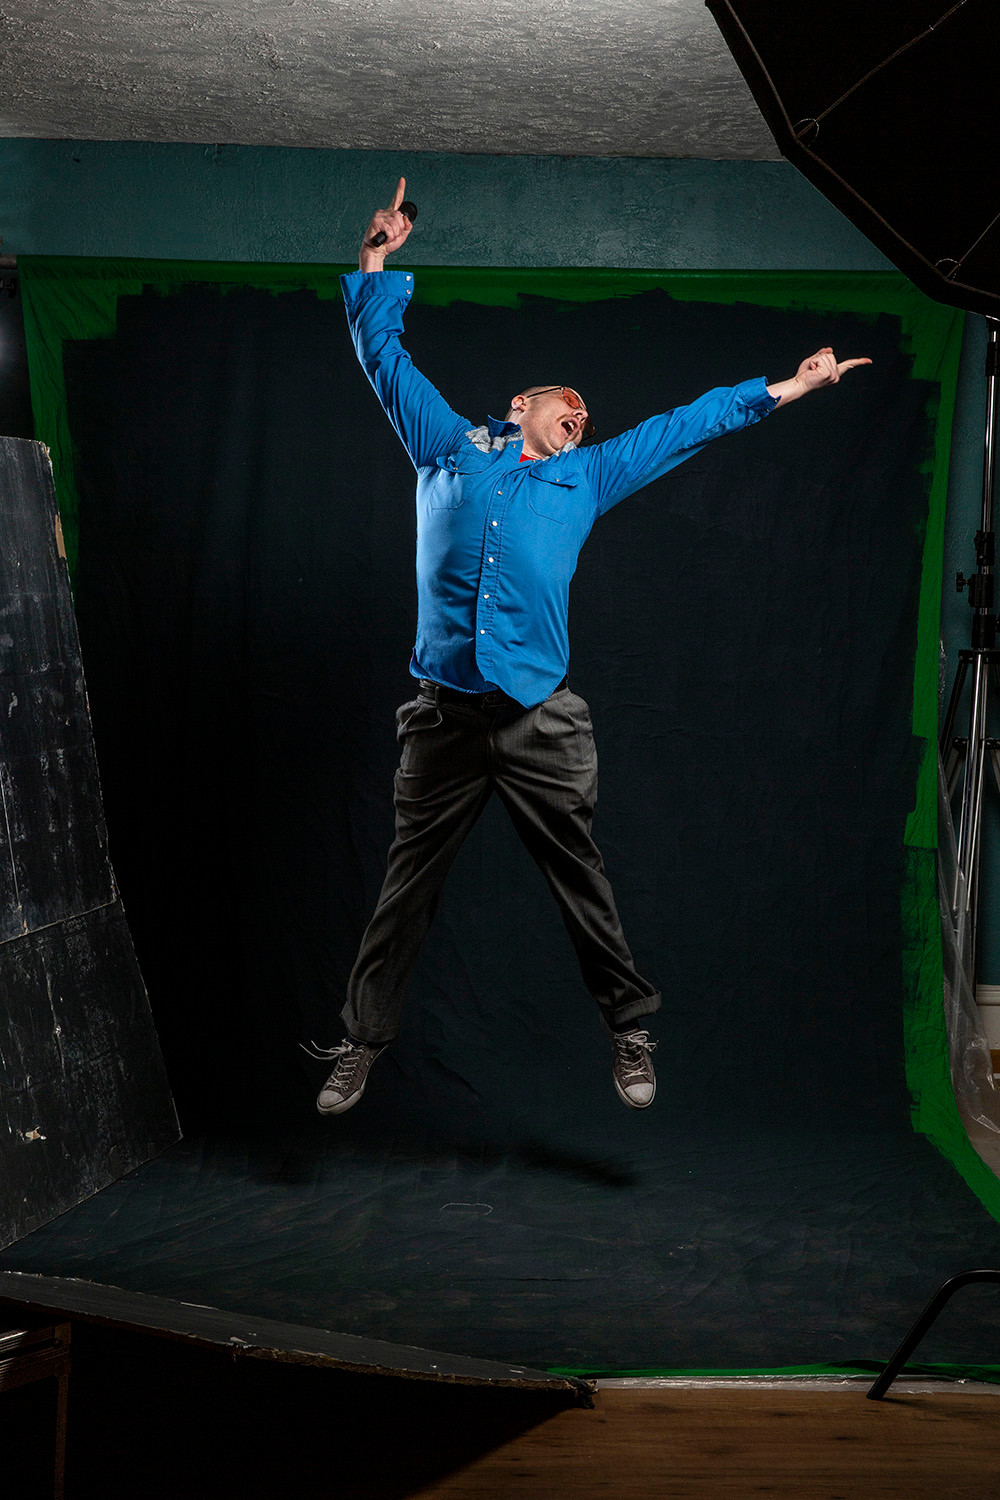 comedian Nate Barron jumps high in the air with a microphone in hand and all limbs outstretched in all directions